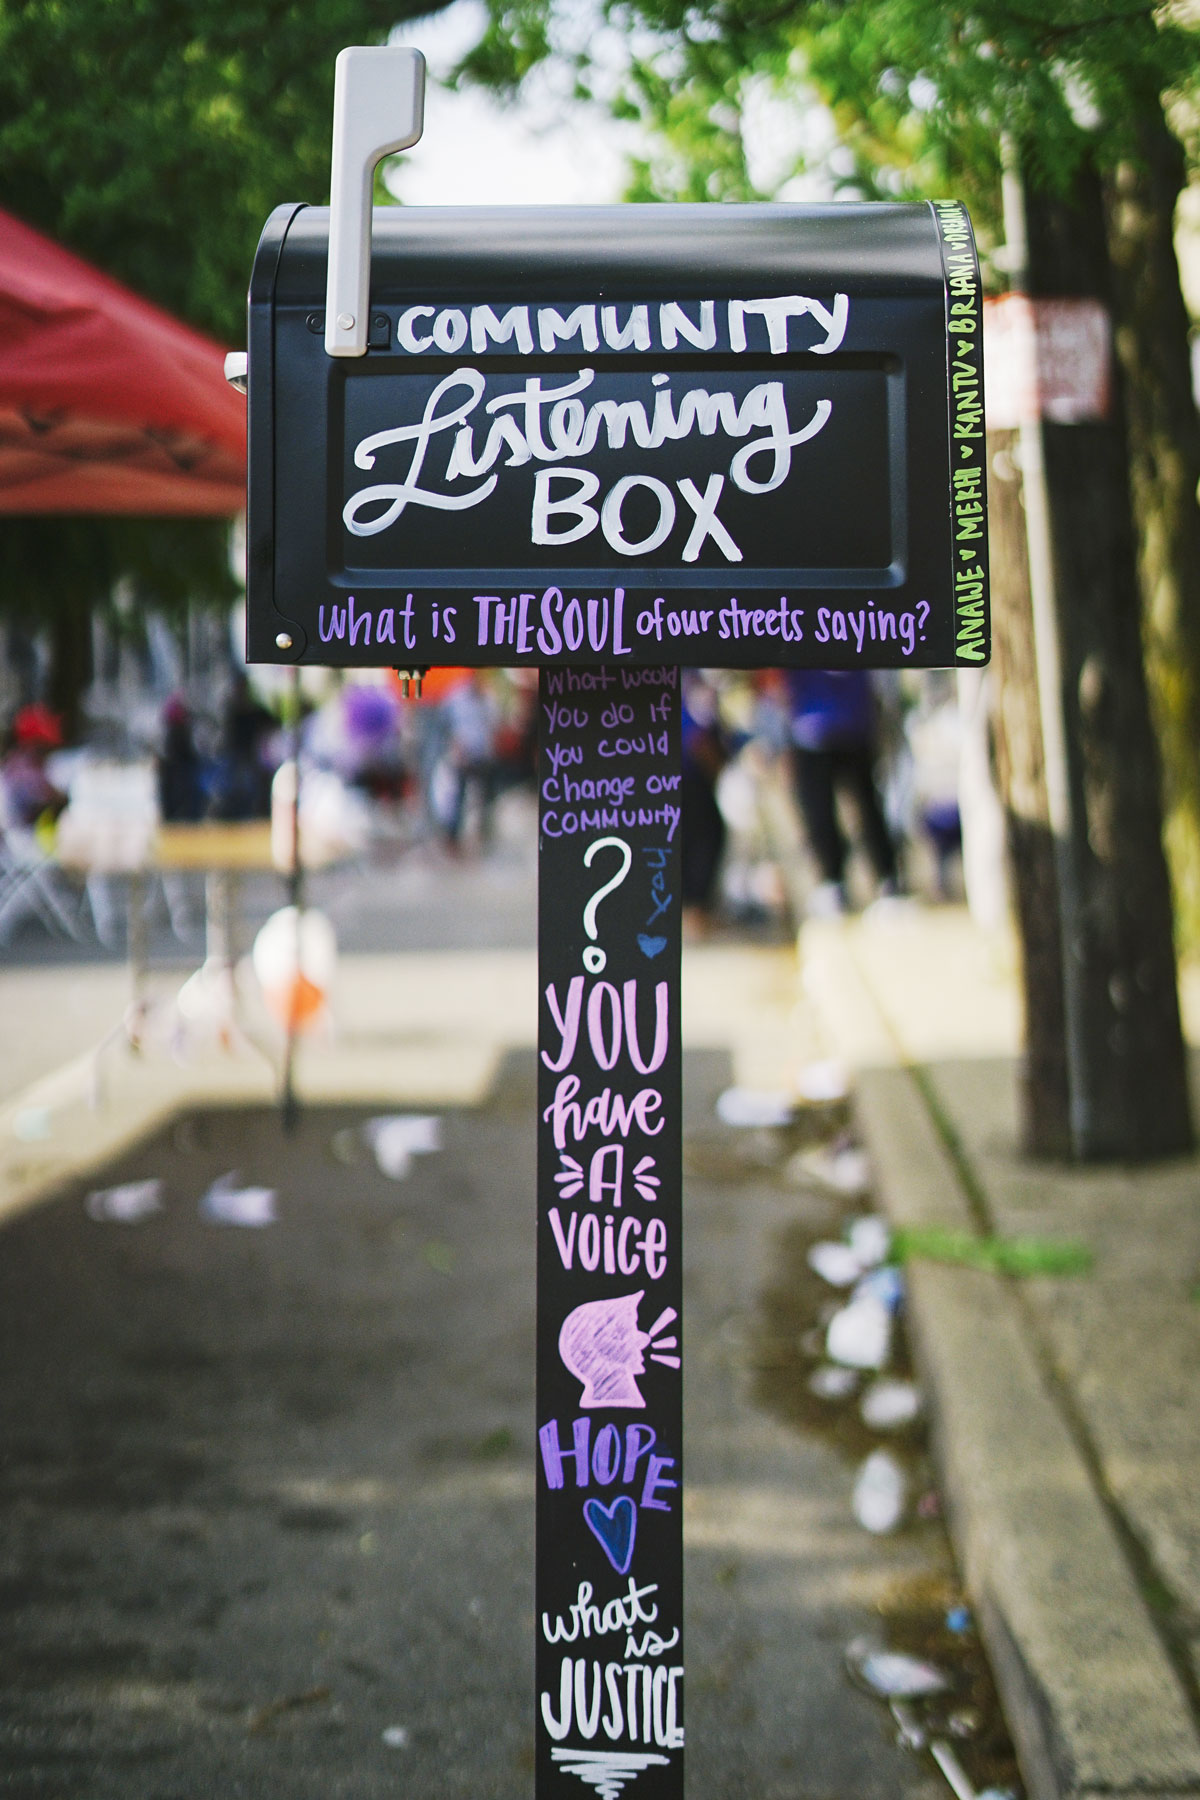 The Community Listening Box, which collected messages of hope from across the community. Some of the notes collected were shared at a street exhibition to invite further community feedback and discussion.  Photo Credit: Ken McFarlane